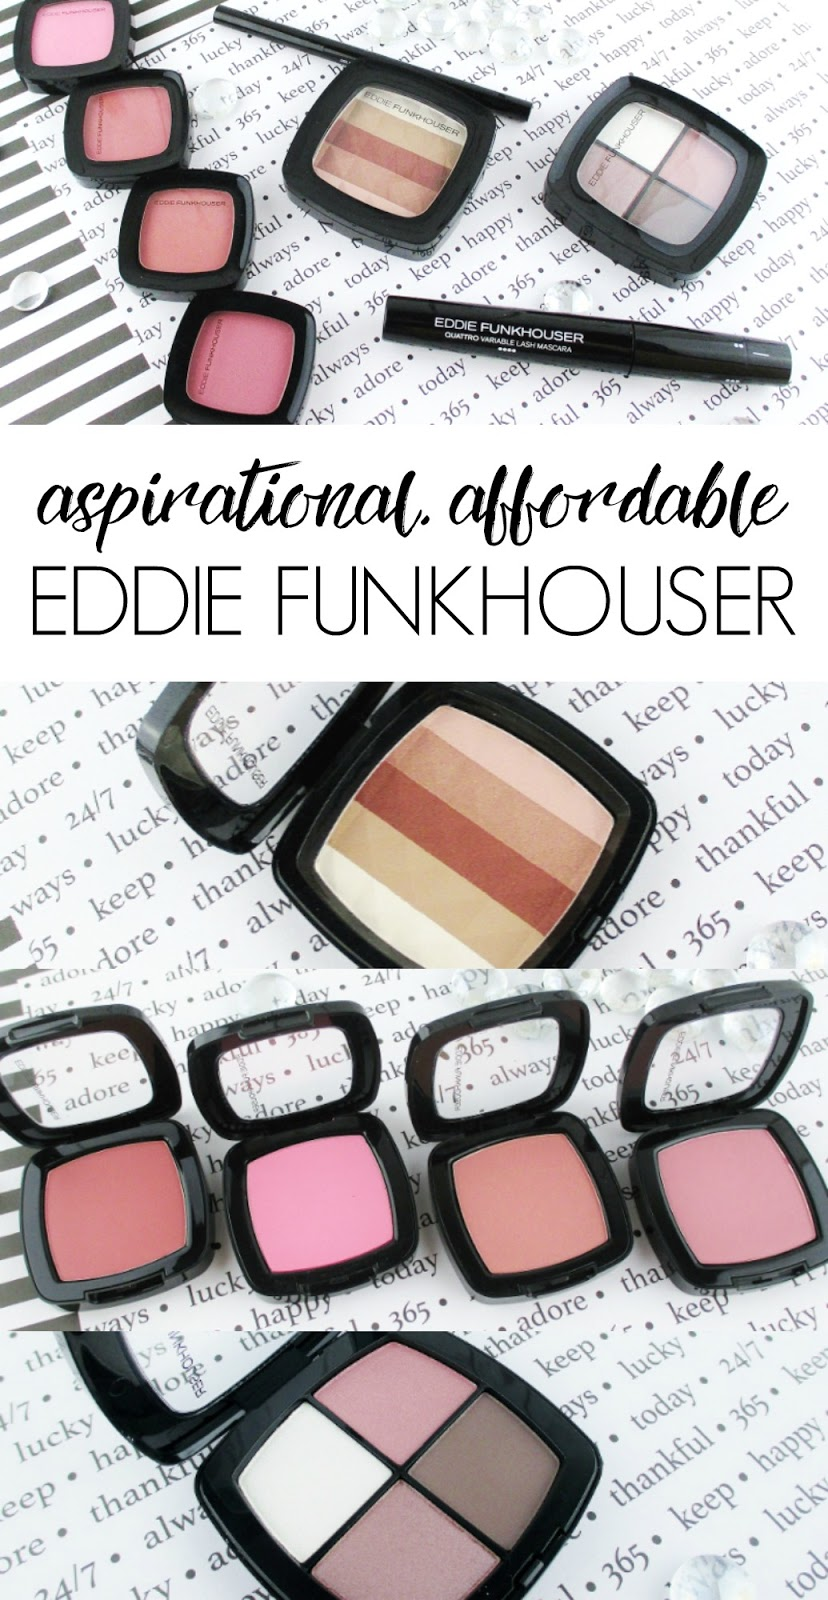 Eddie Funkhouser | Aspirational and Affordable Cosmetics Review